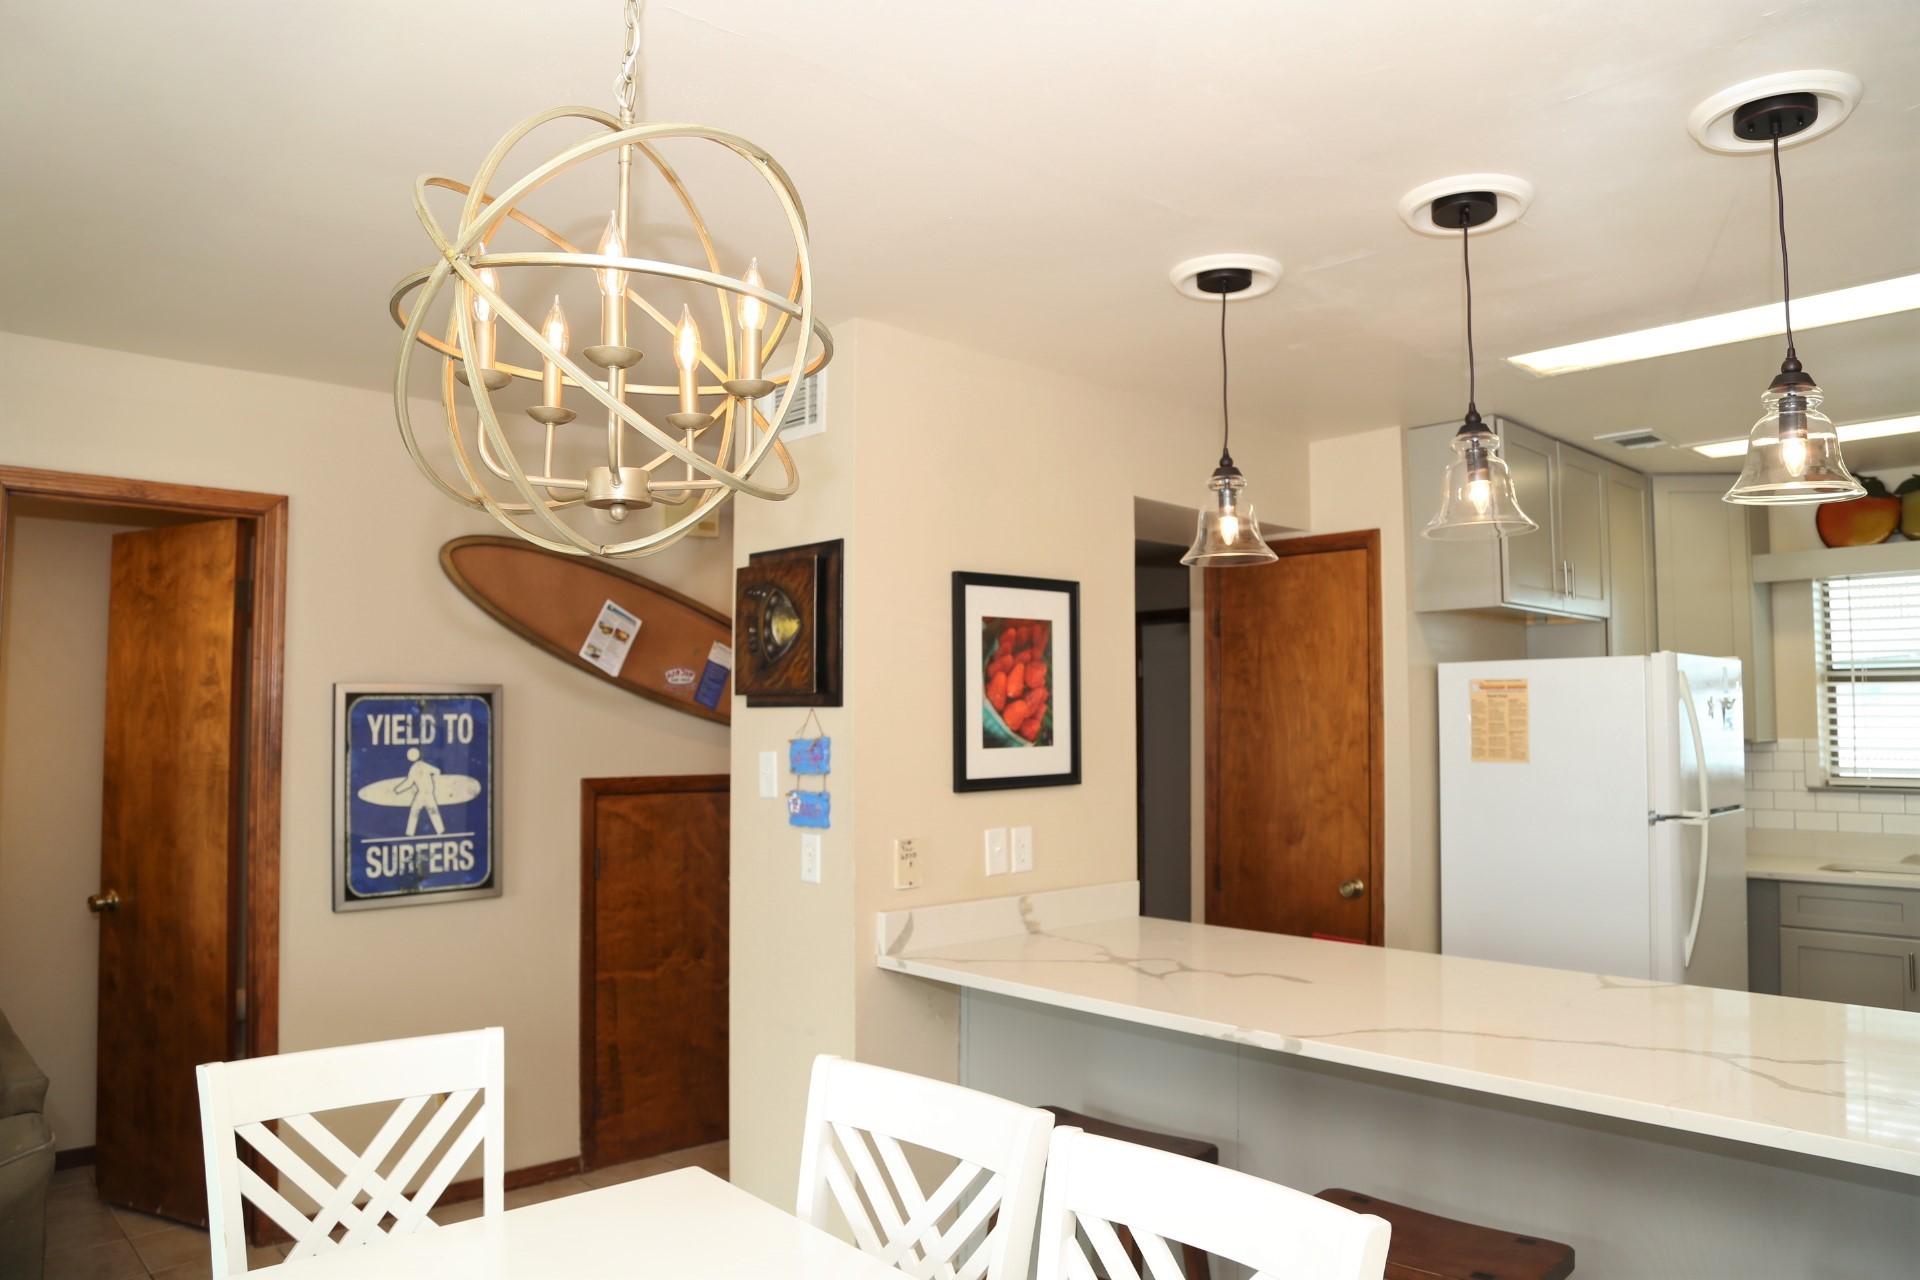 Cool new light fixtures added above the dining table & b